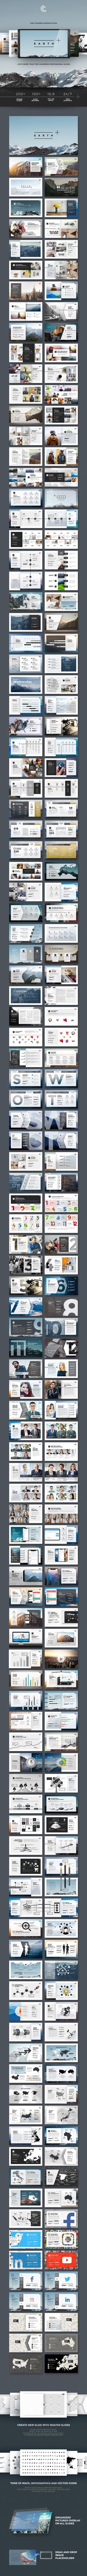 Earth PowerPoint — Powerpoint PPTX #best #business plan • Available here ➝ https://graphicriver.net/item/earth-powerpoint/20836318?ref=pxcr